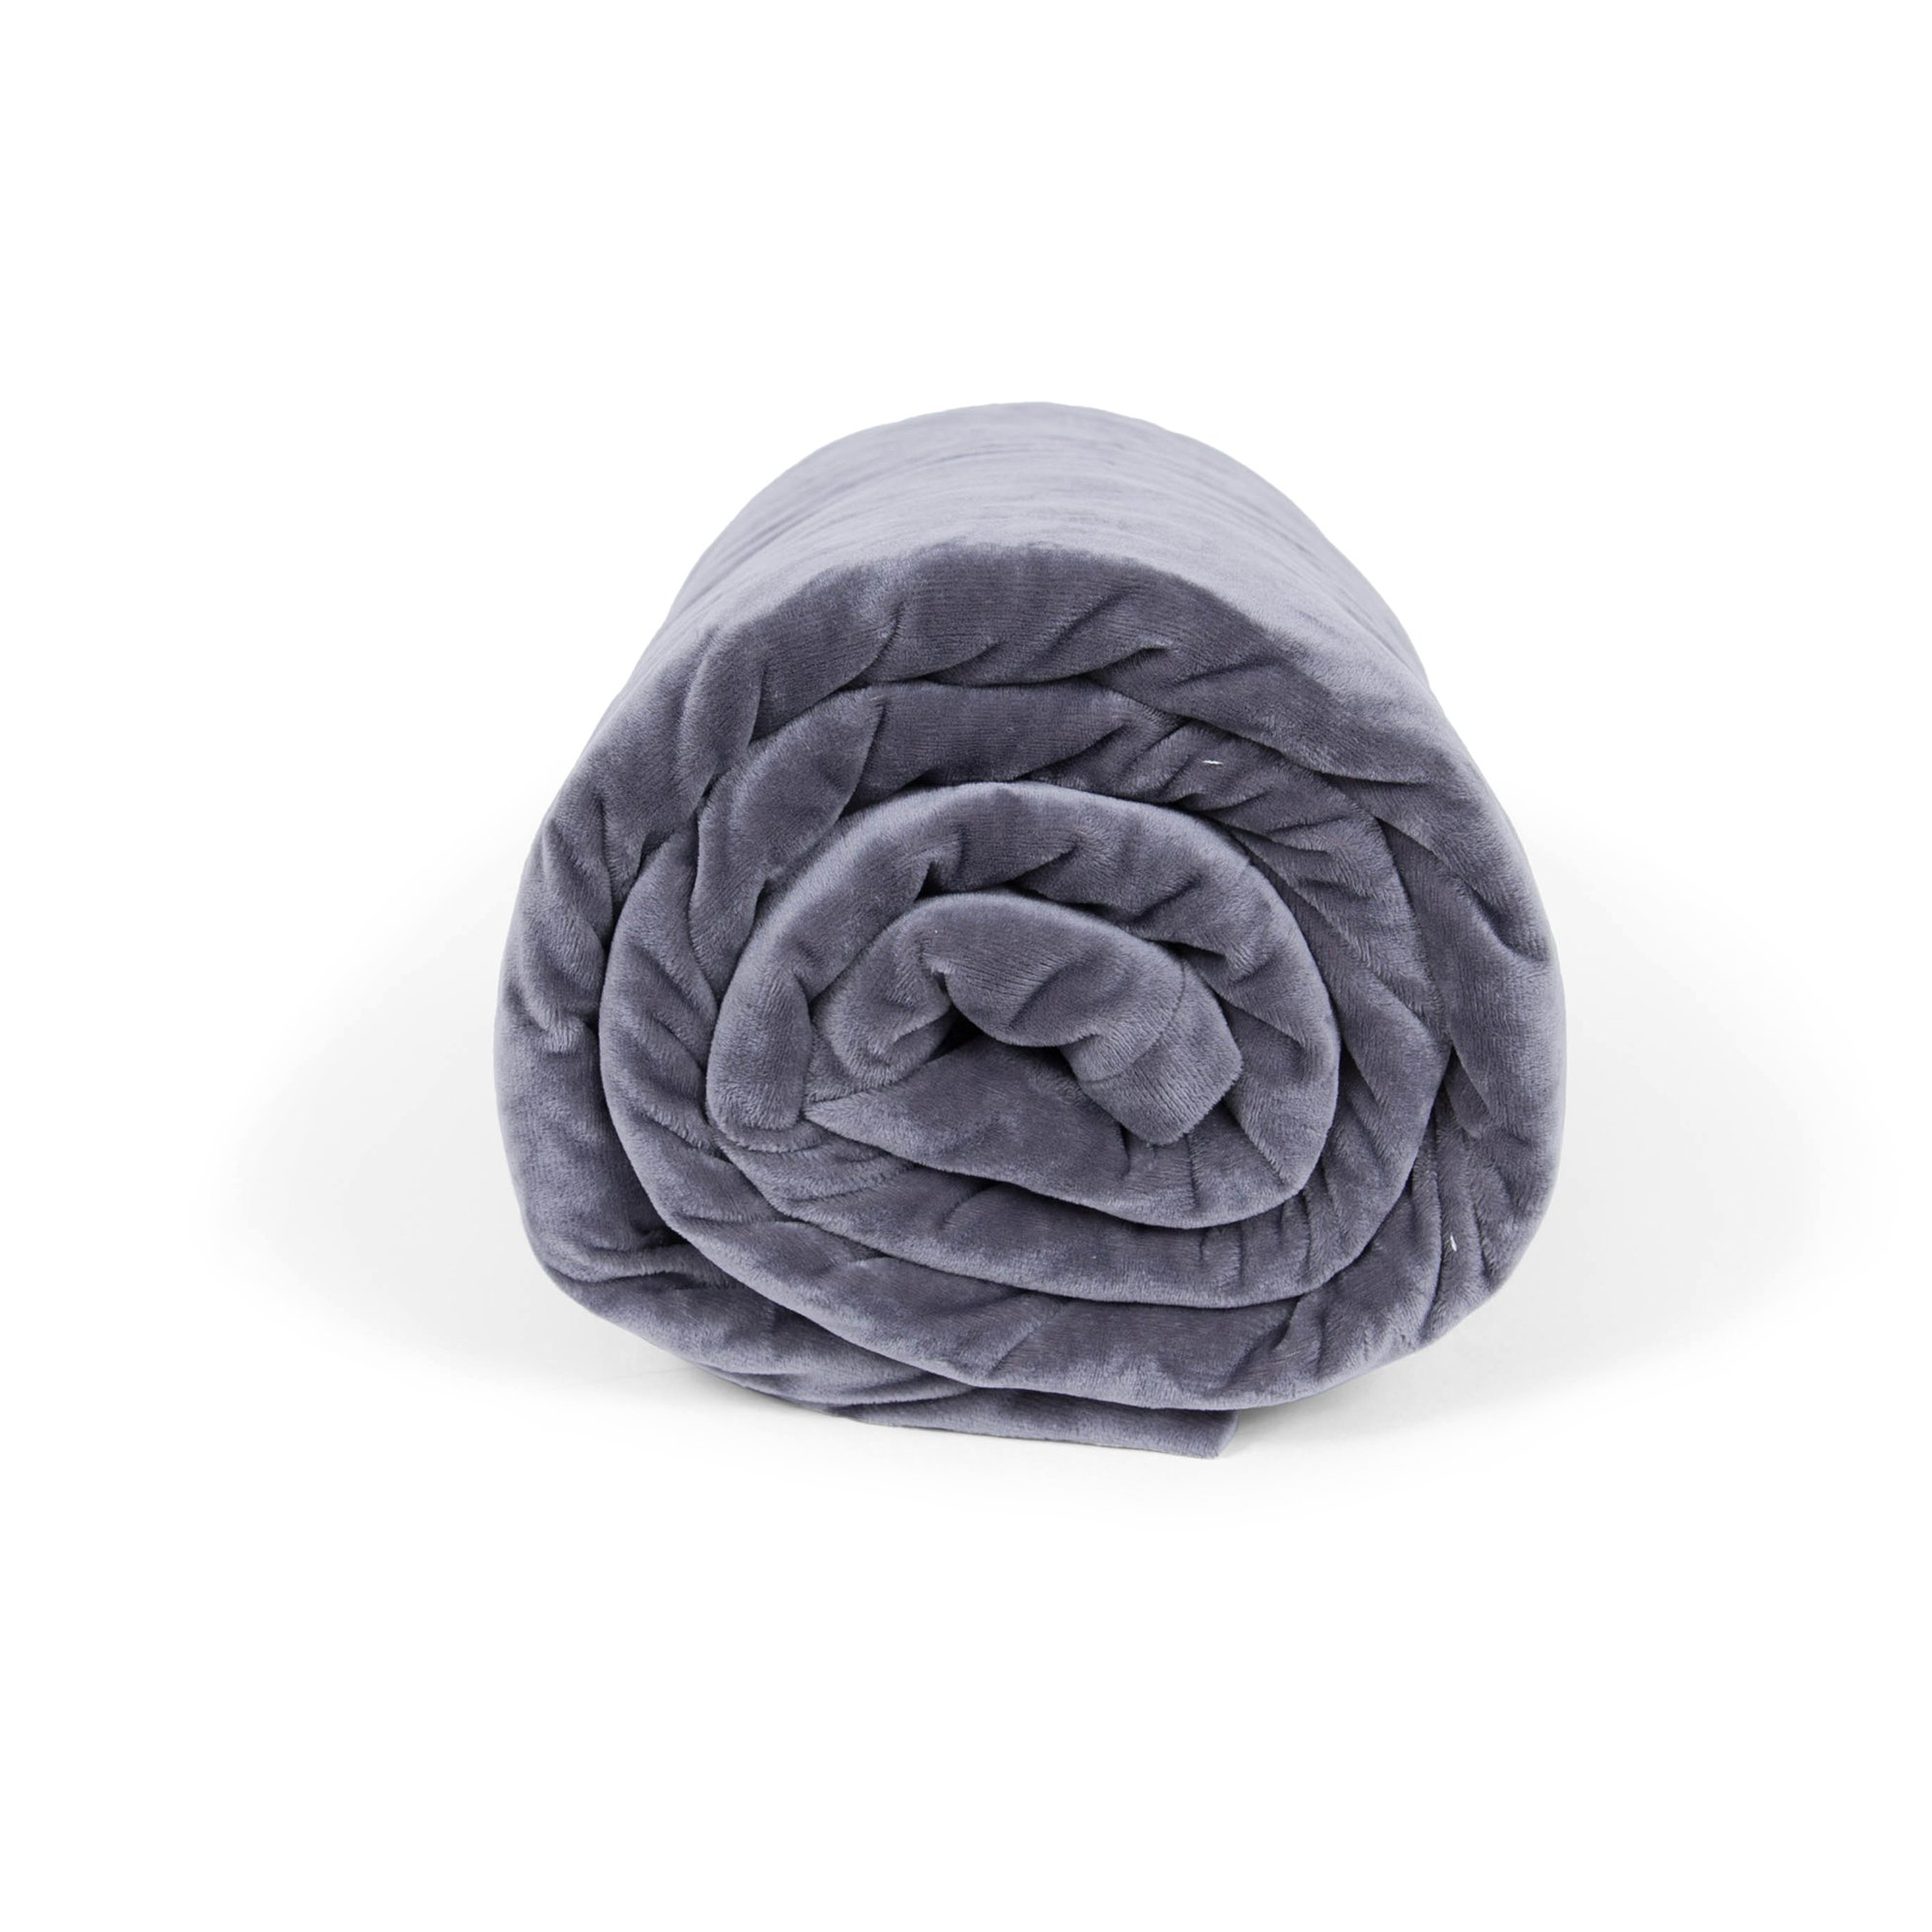 Remzy Weighted Blanket with Premium Duvet Cover